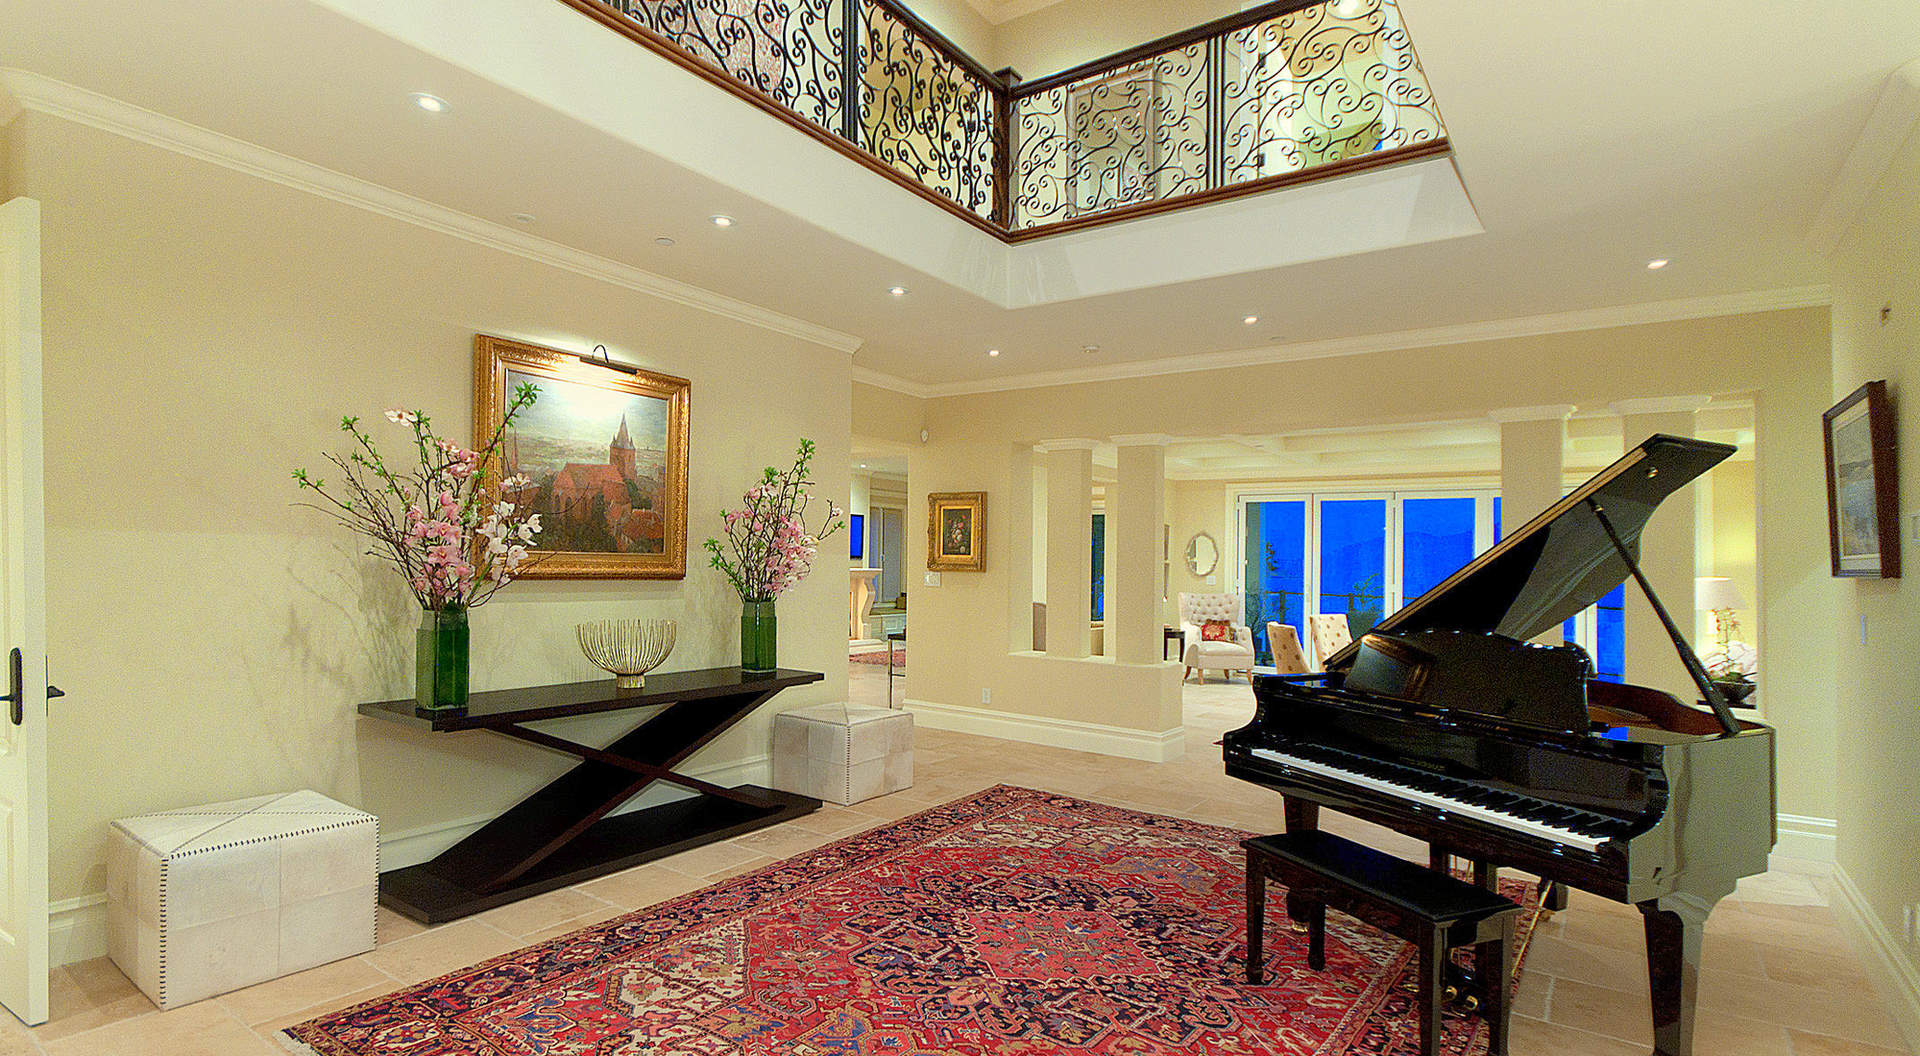 Grand Main Entry with Double Height Ceilings